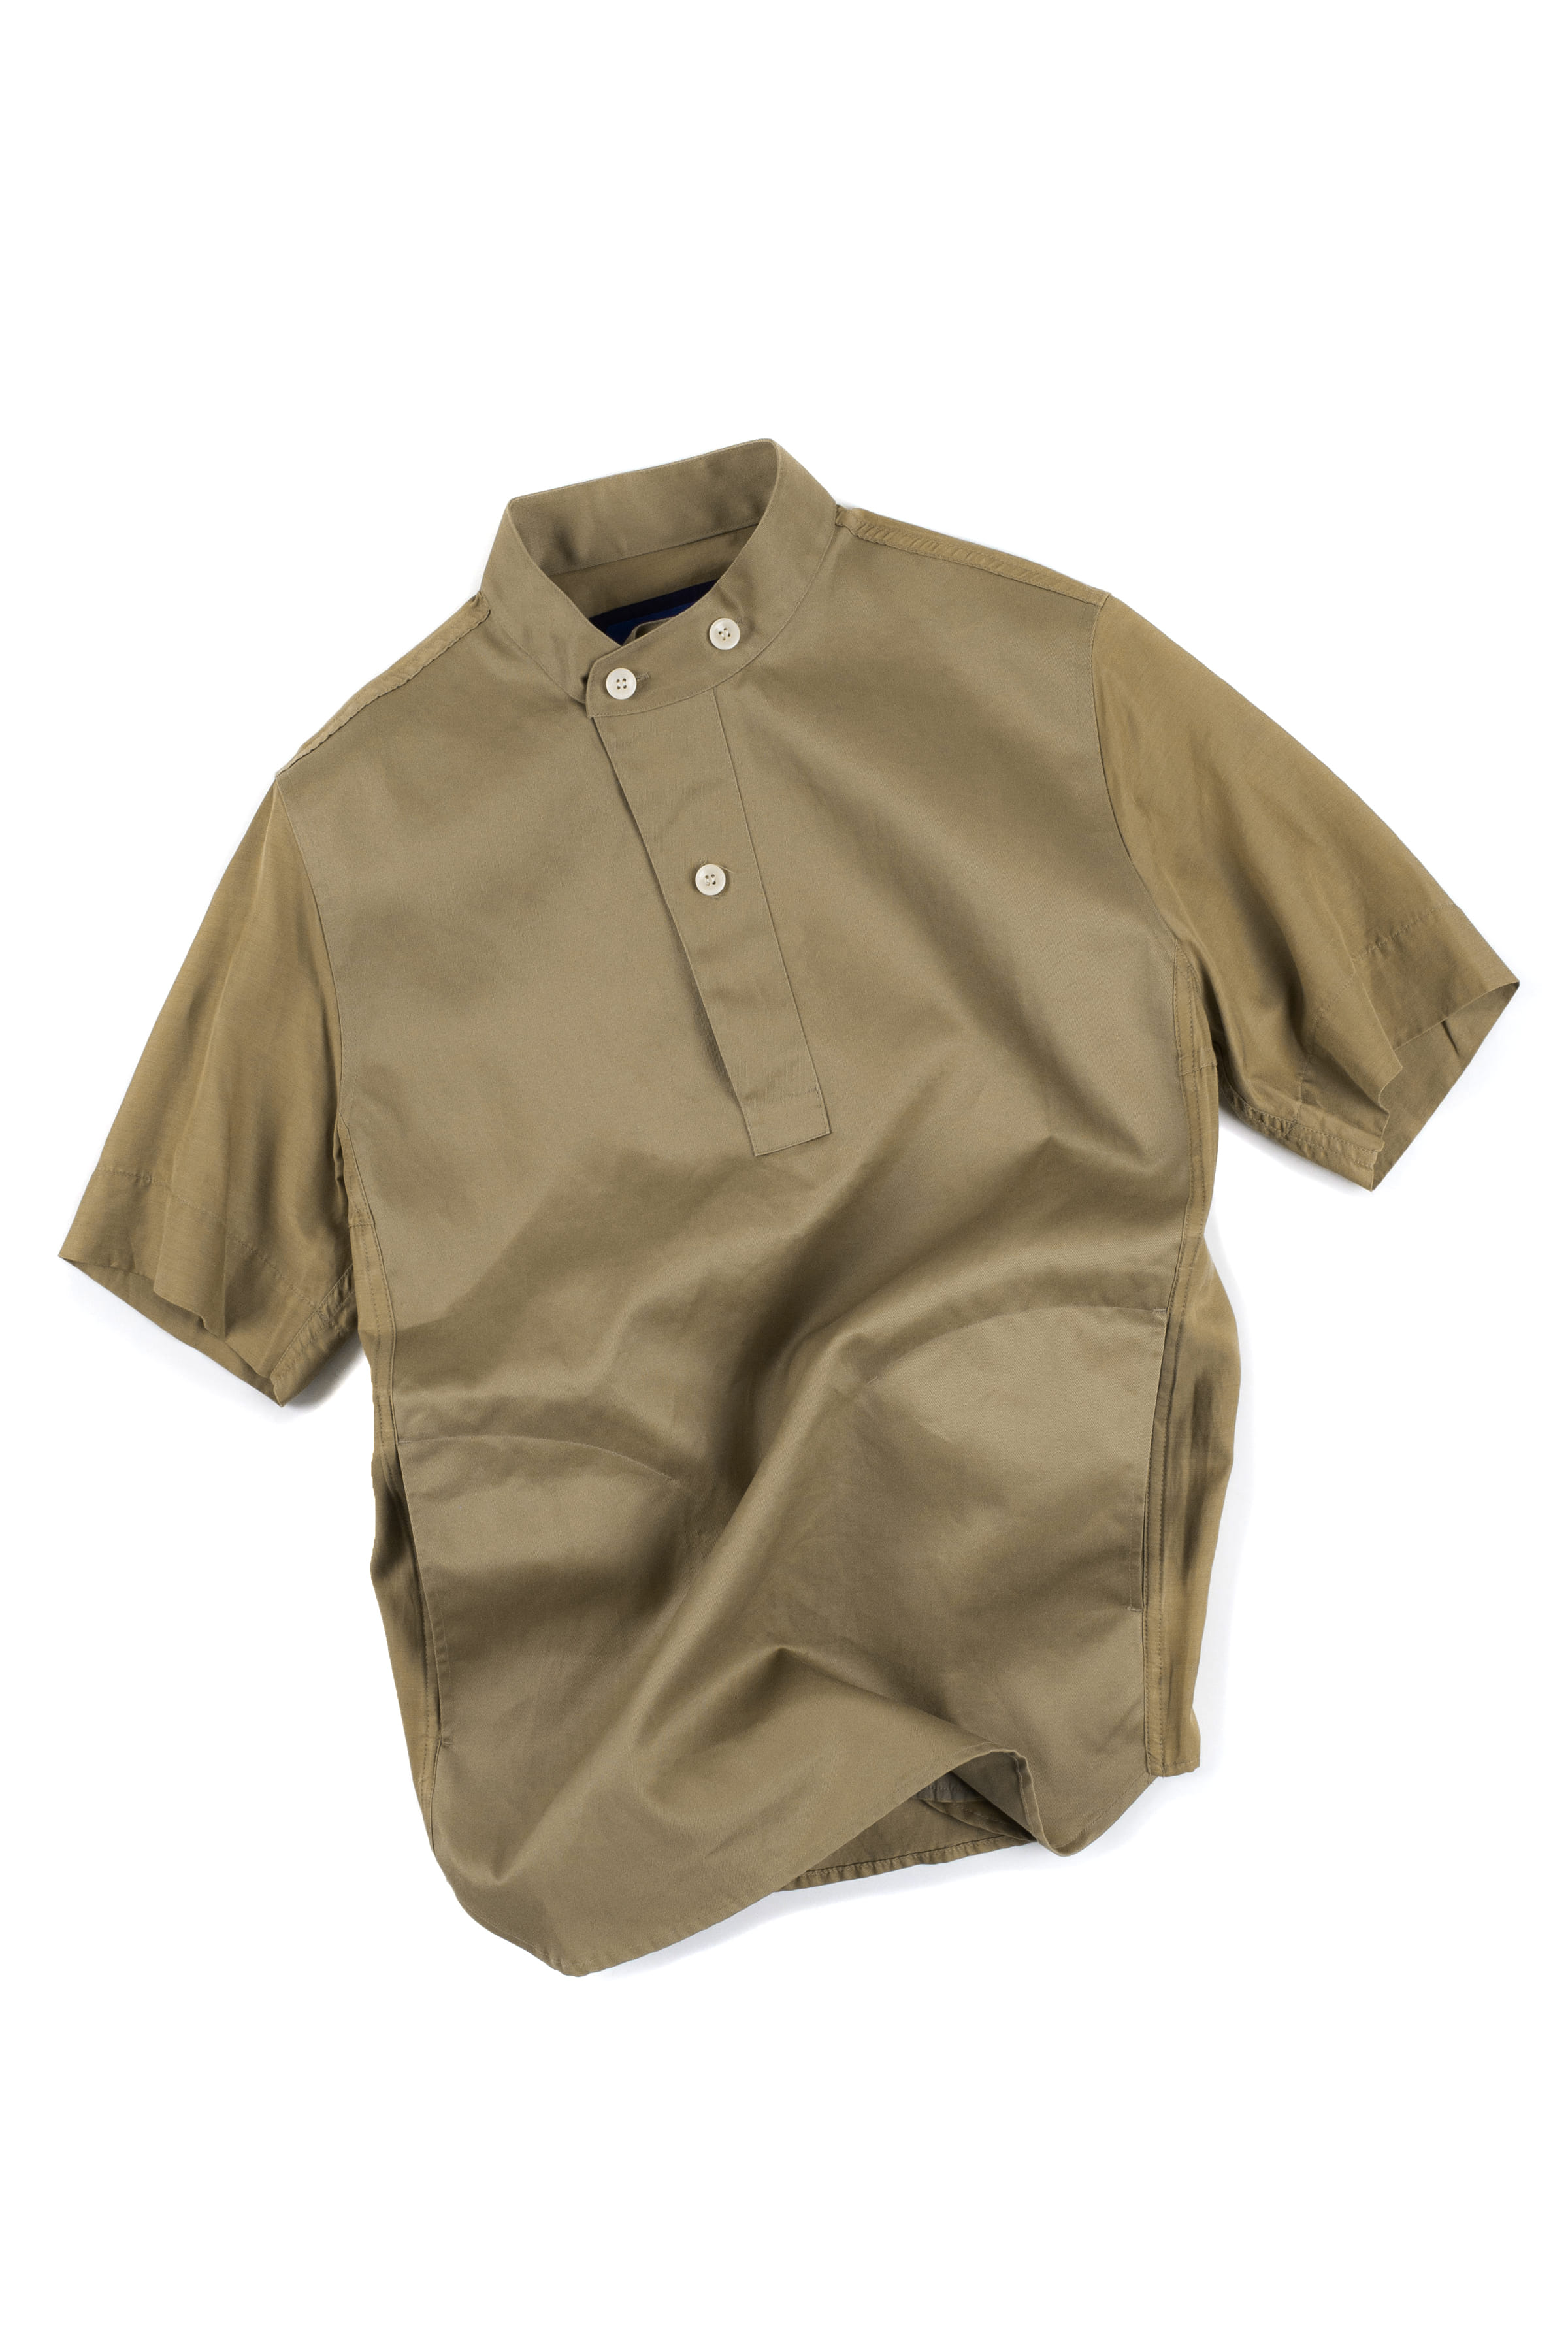 Document : Utility Shirts (Beige)